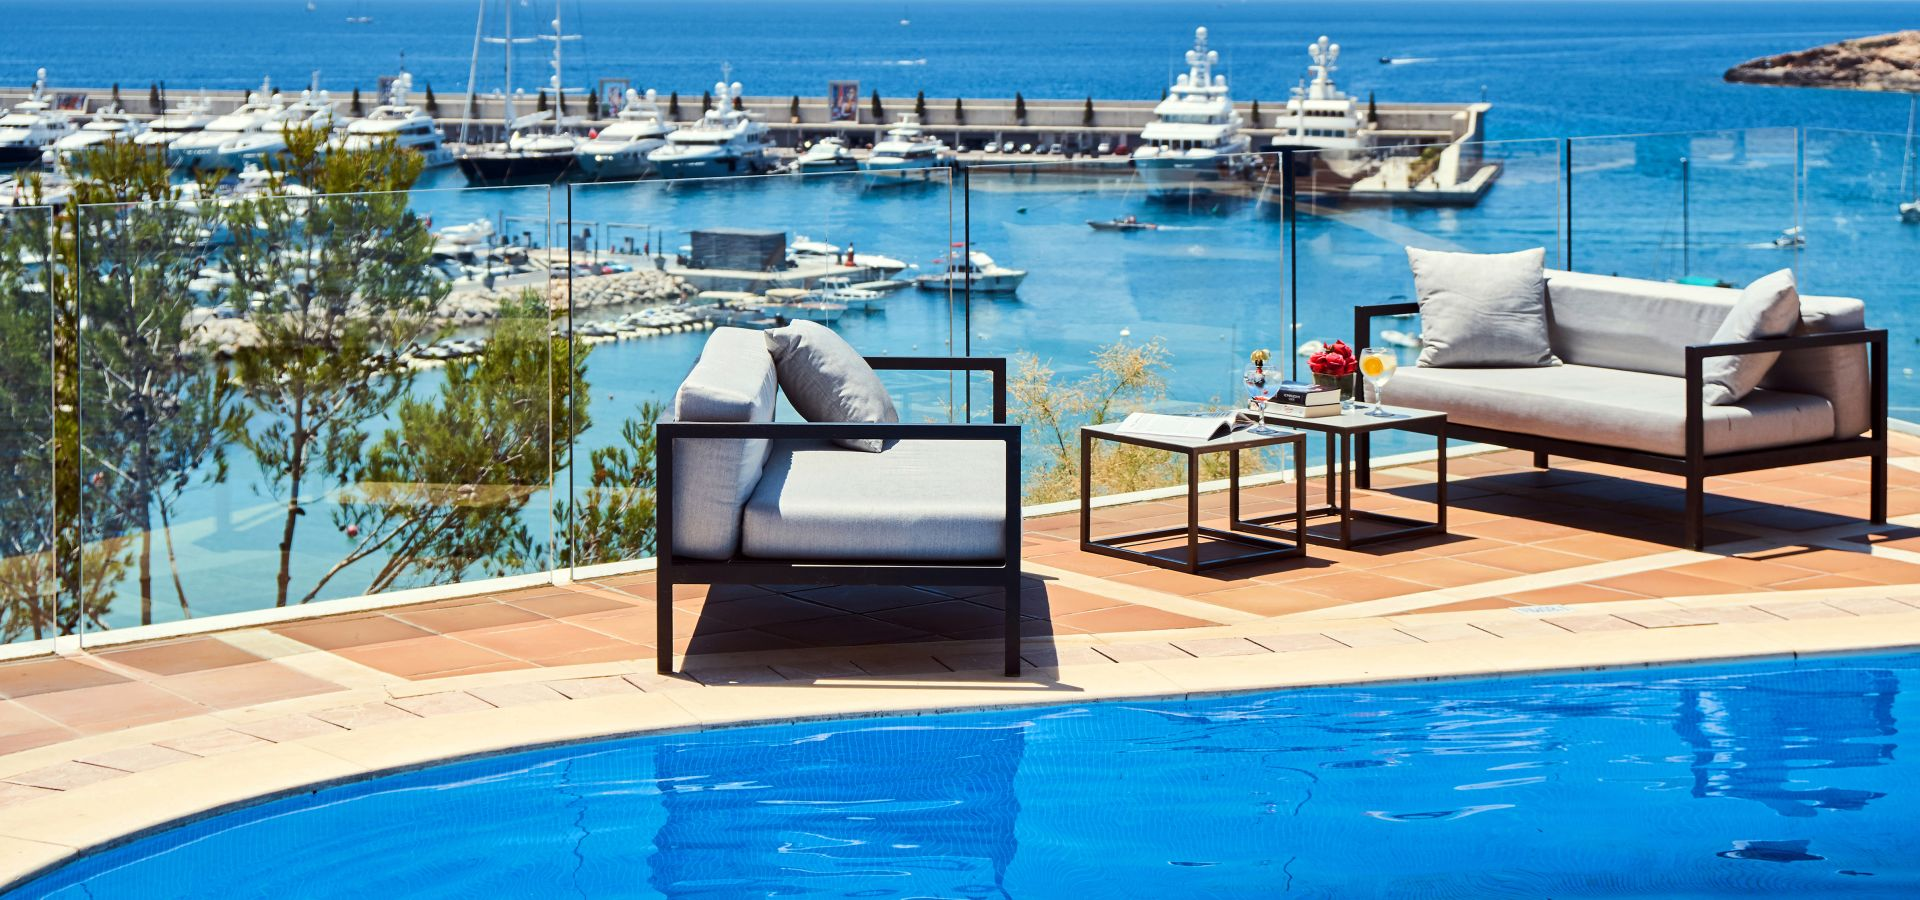 Pool View Pure Salt Adriano Hotel - Majorca Guide